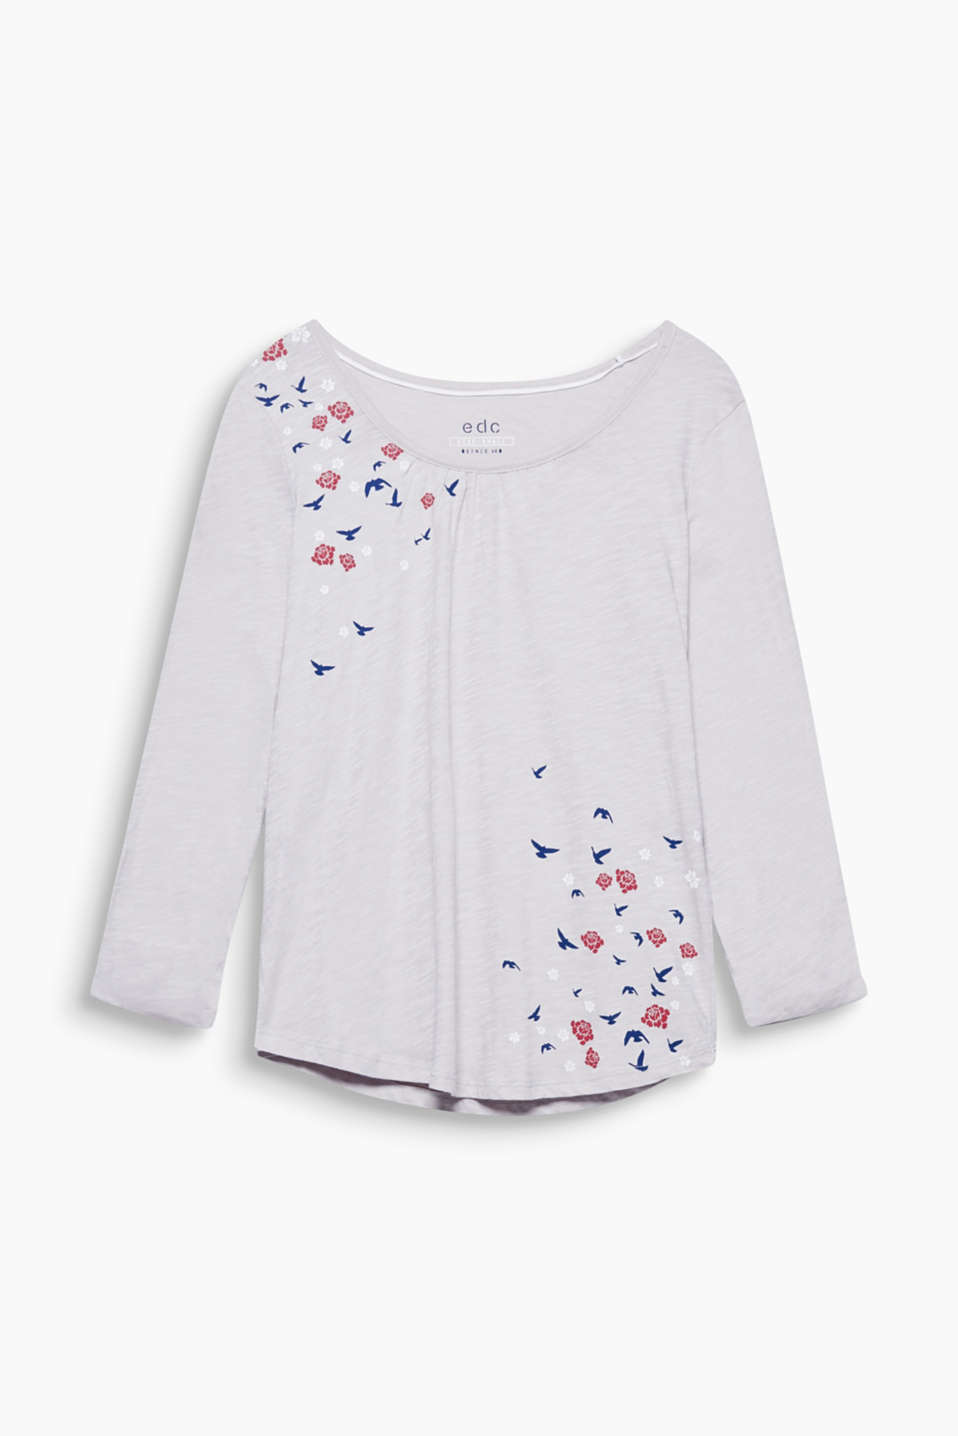 An airy look: the fine slub texture and delicate, positioned prints give this top its ultra-lightweight look!